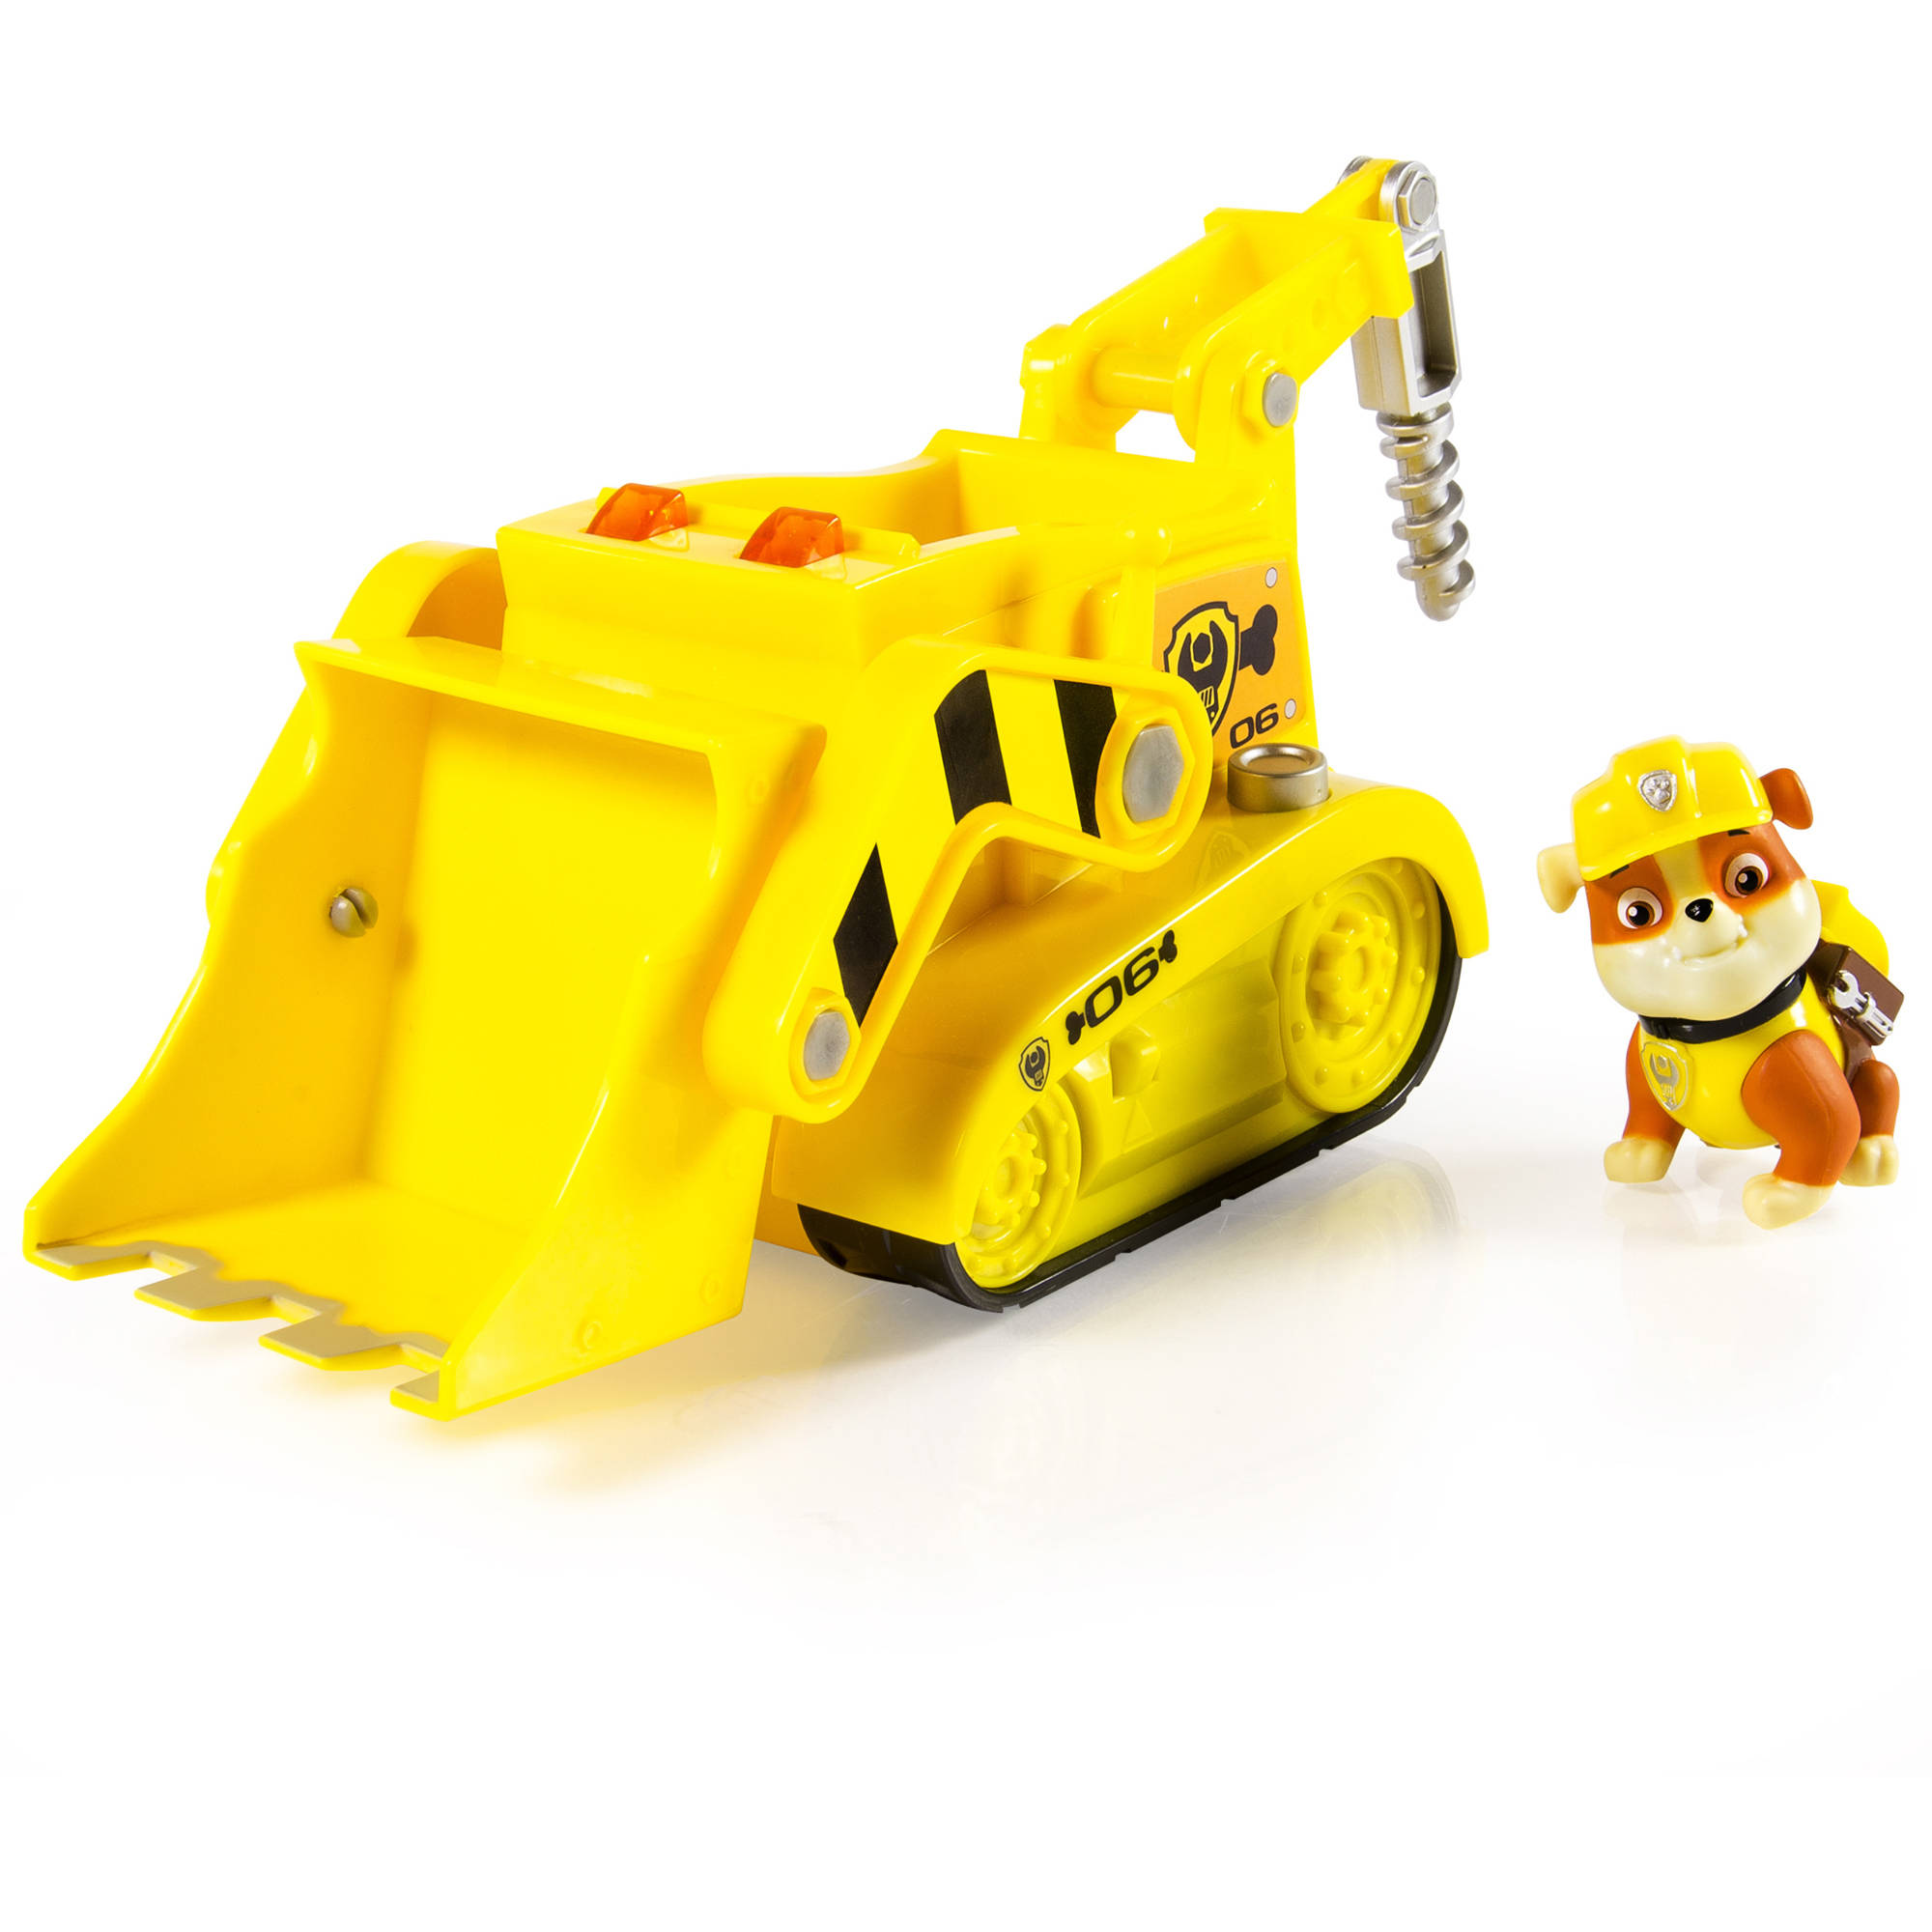 <div>Paw Patrol Rubble's Lights and Sounds Construction Truck Vehicle with figure< div>... by Spin Master Ltd